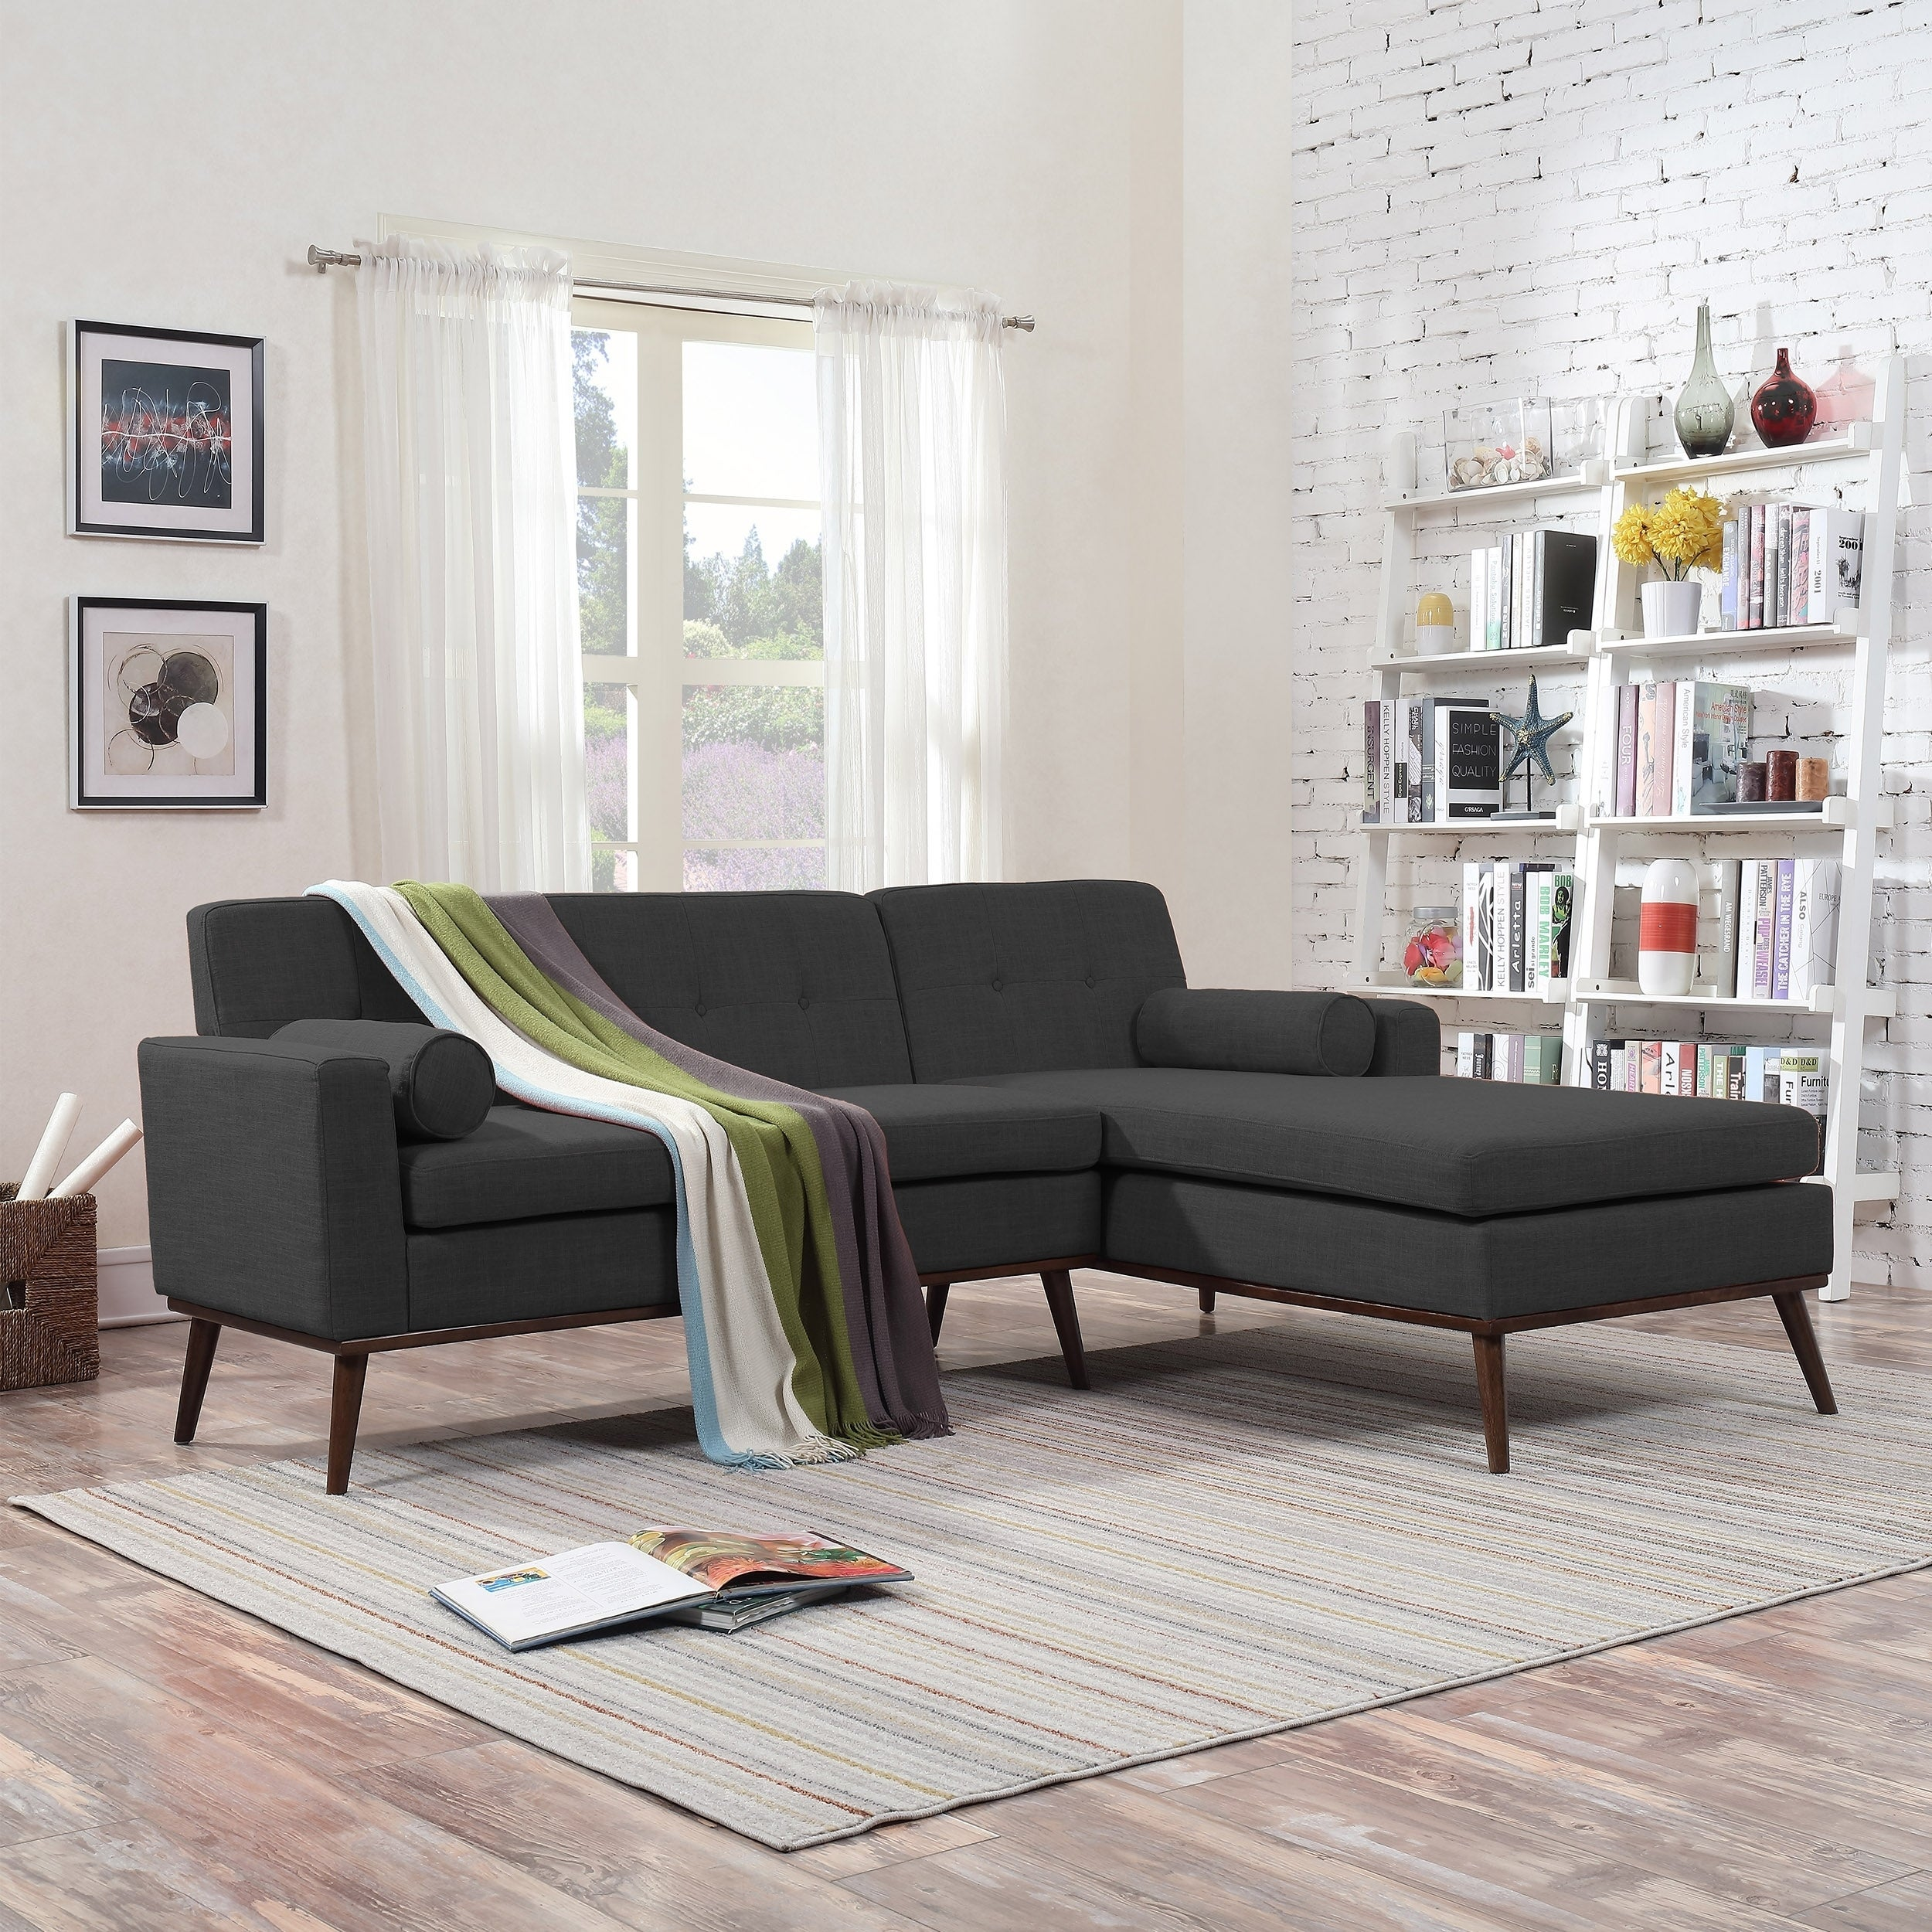 Stormi Mid Century Modern 2 Piece Mut Sectional Sofa And Lounge Set By Christopher Knight Home